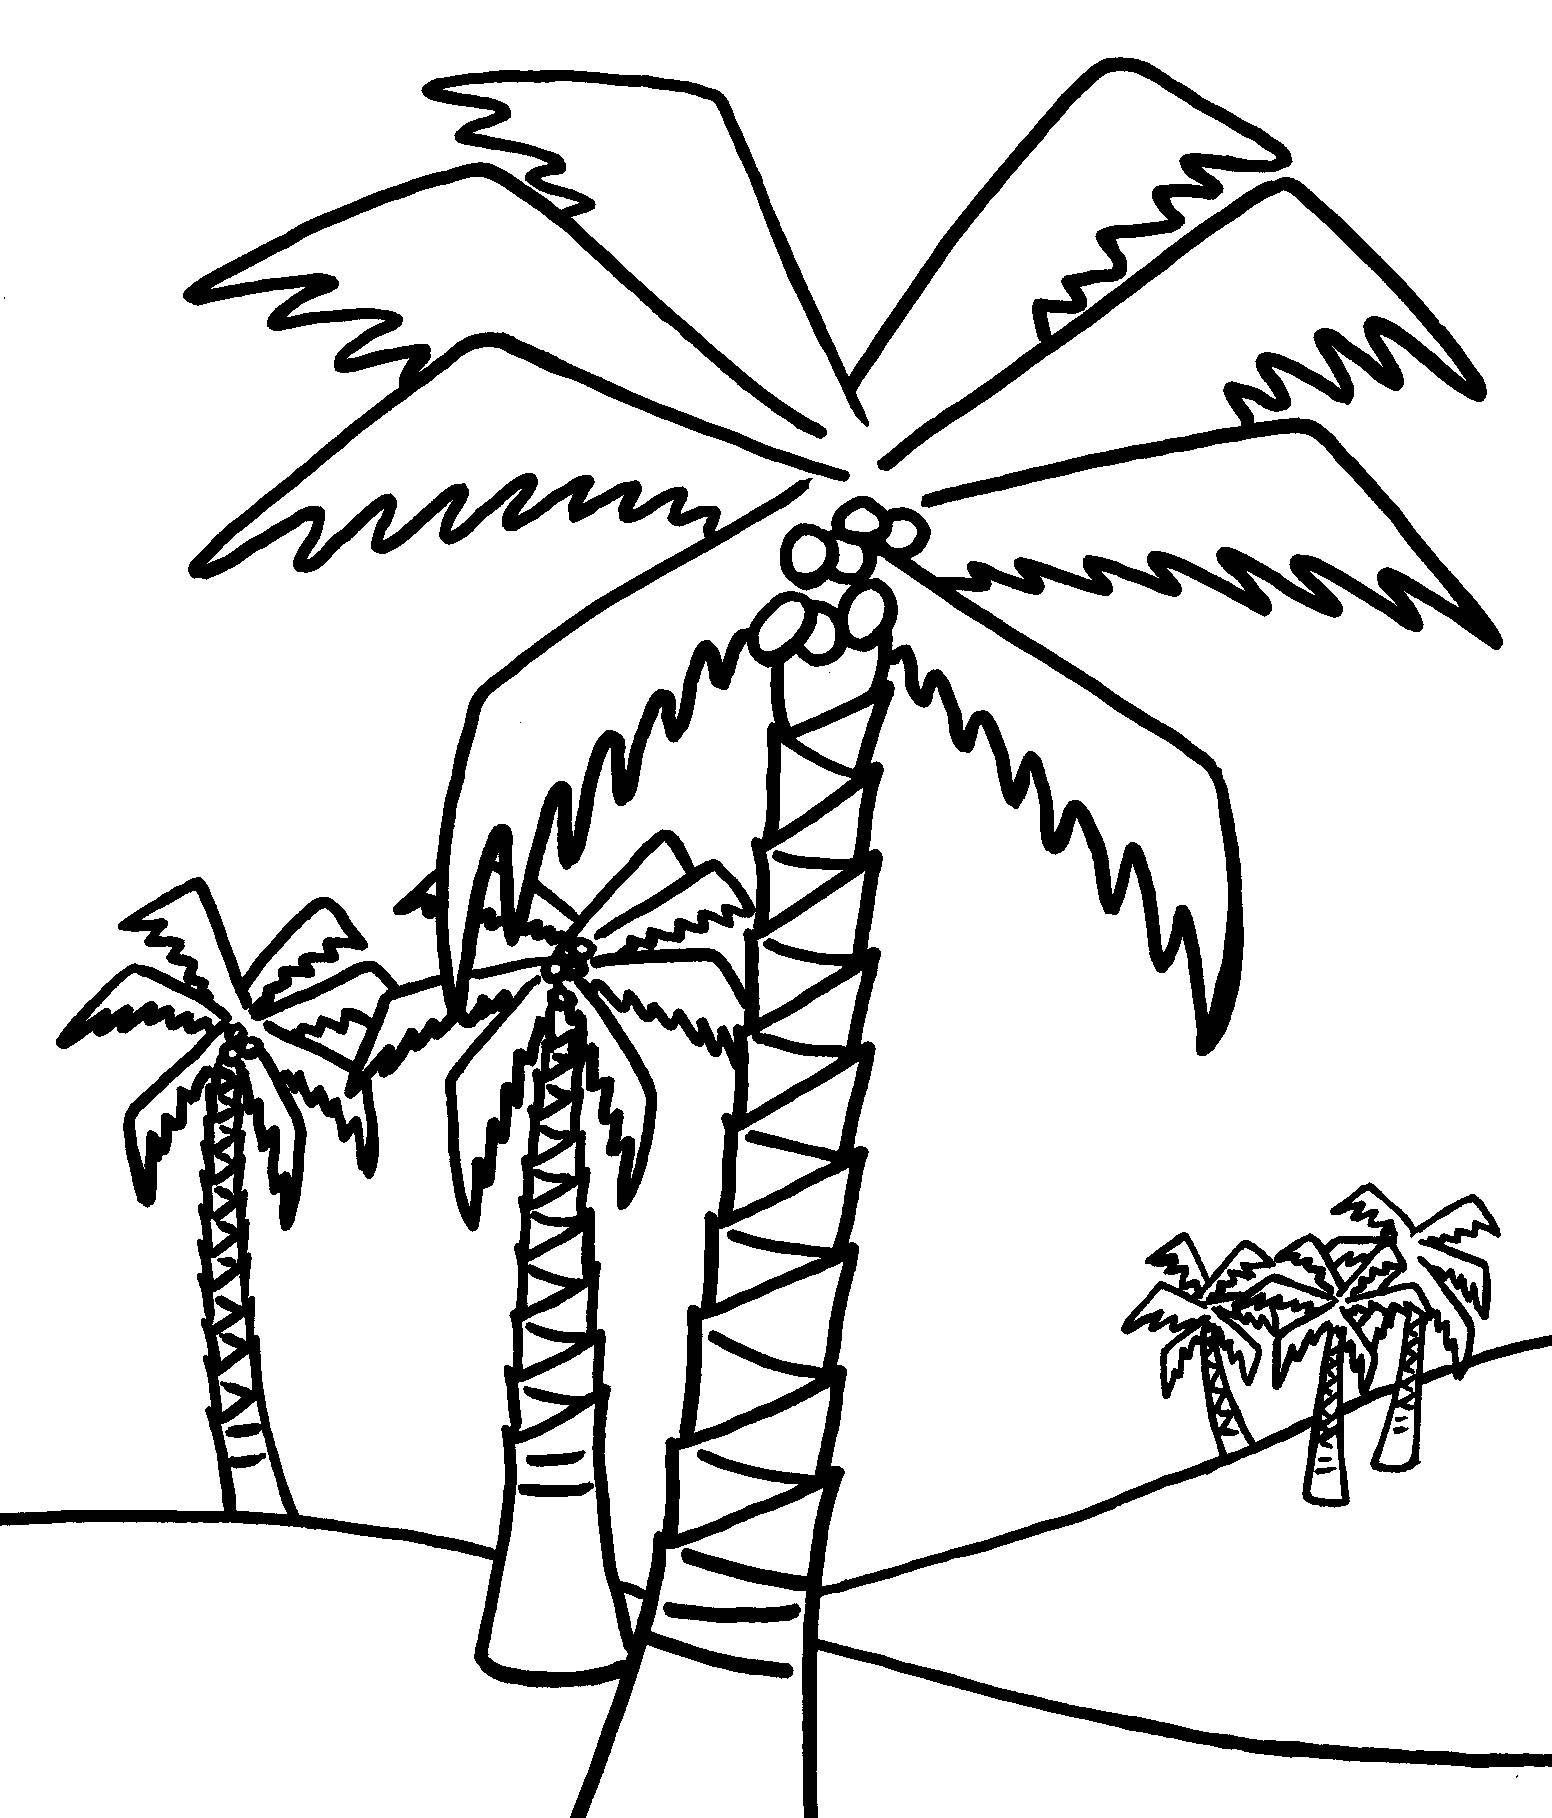 tree coloring pages kids - Colouring Pages For Kids